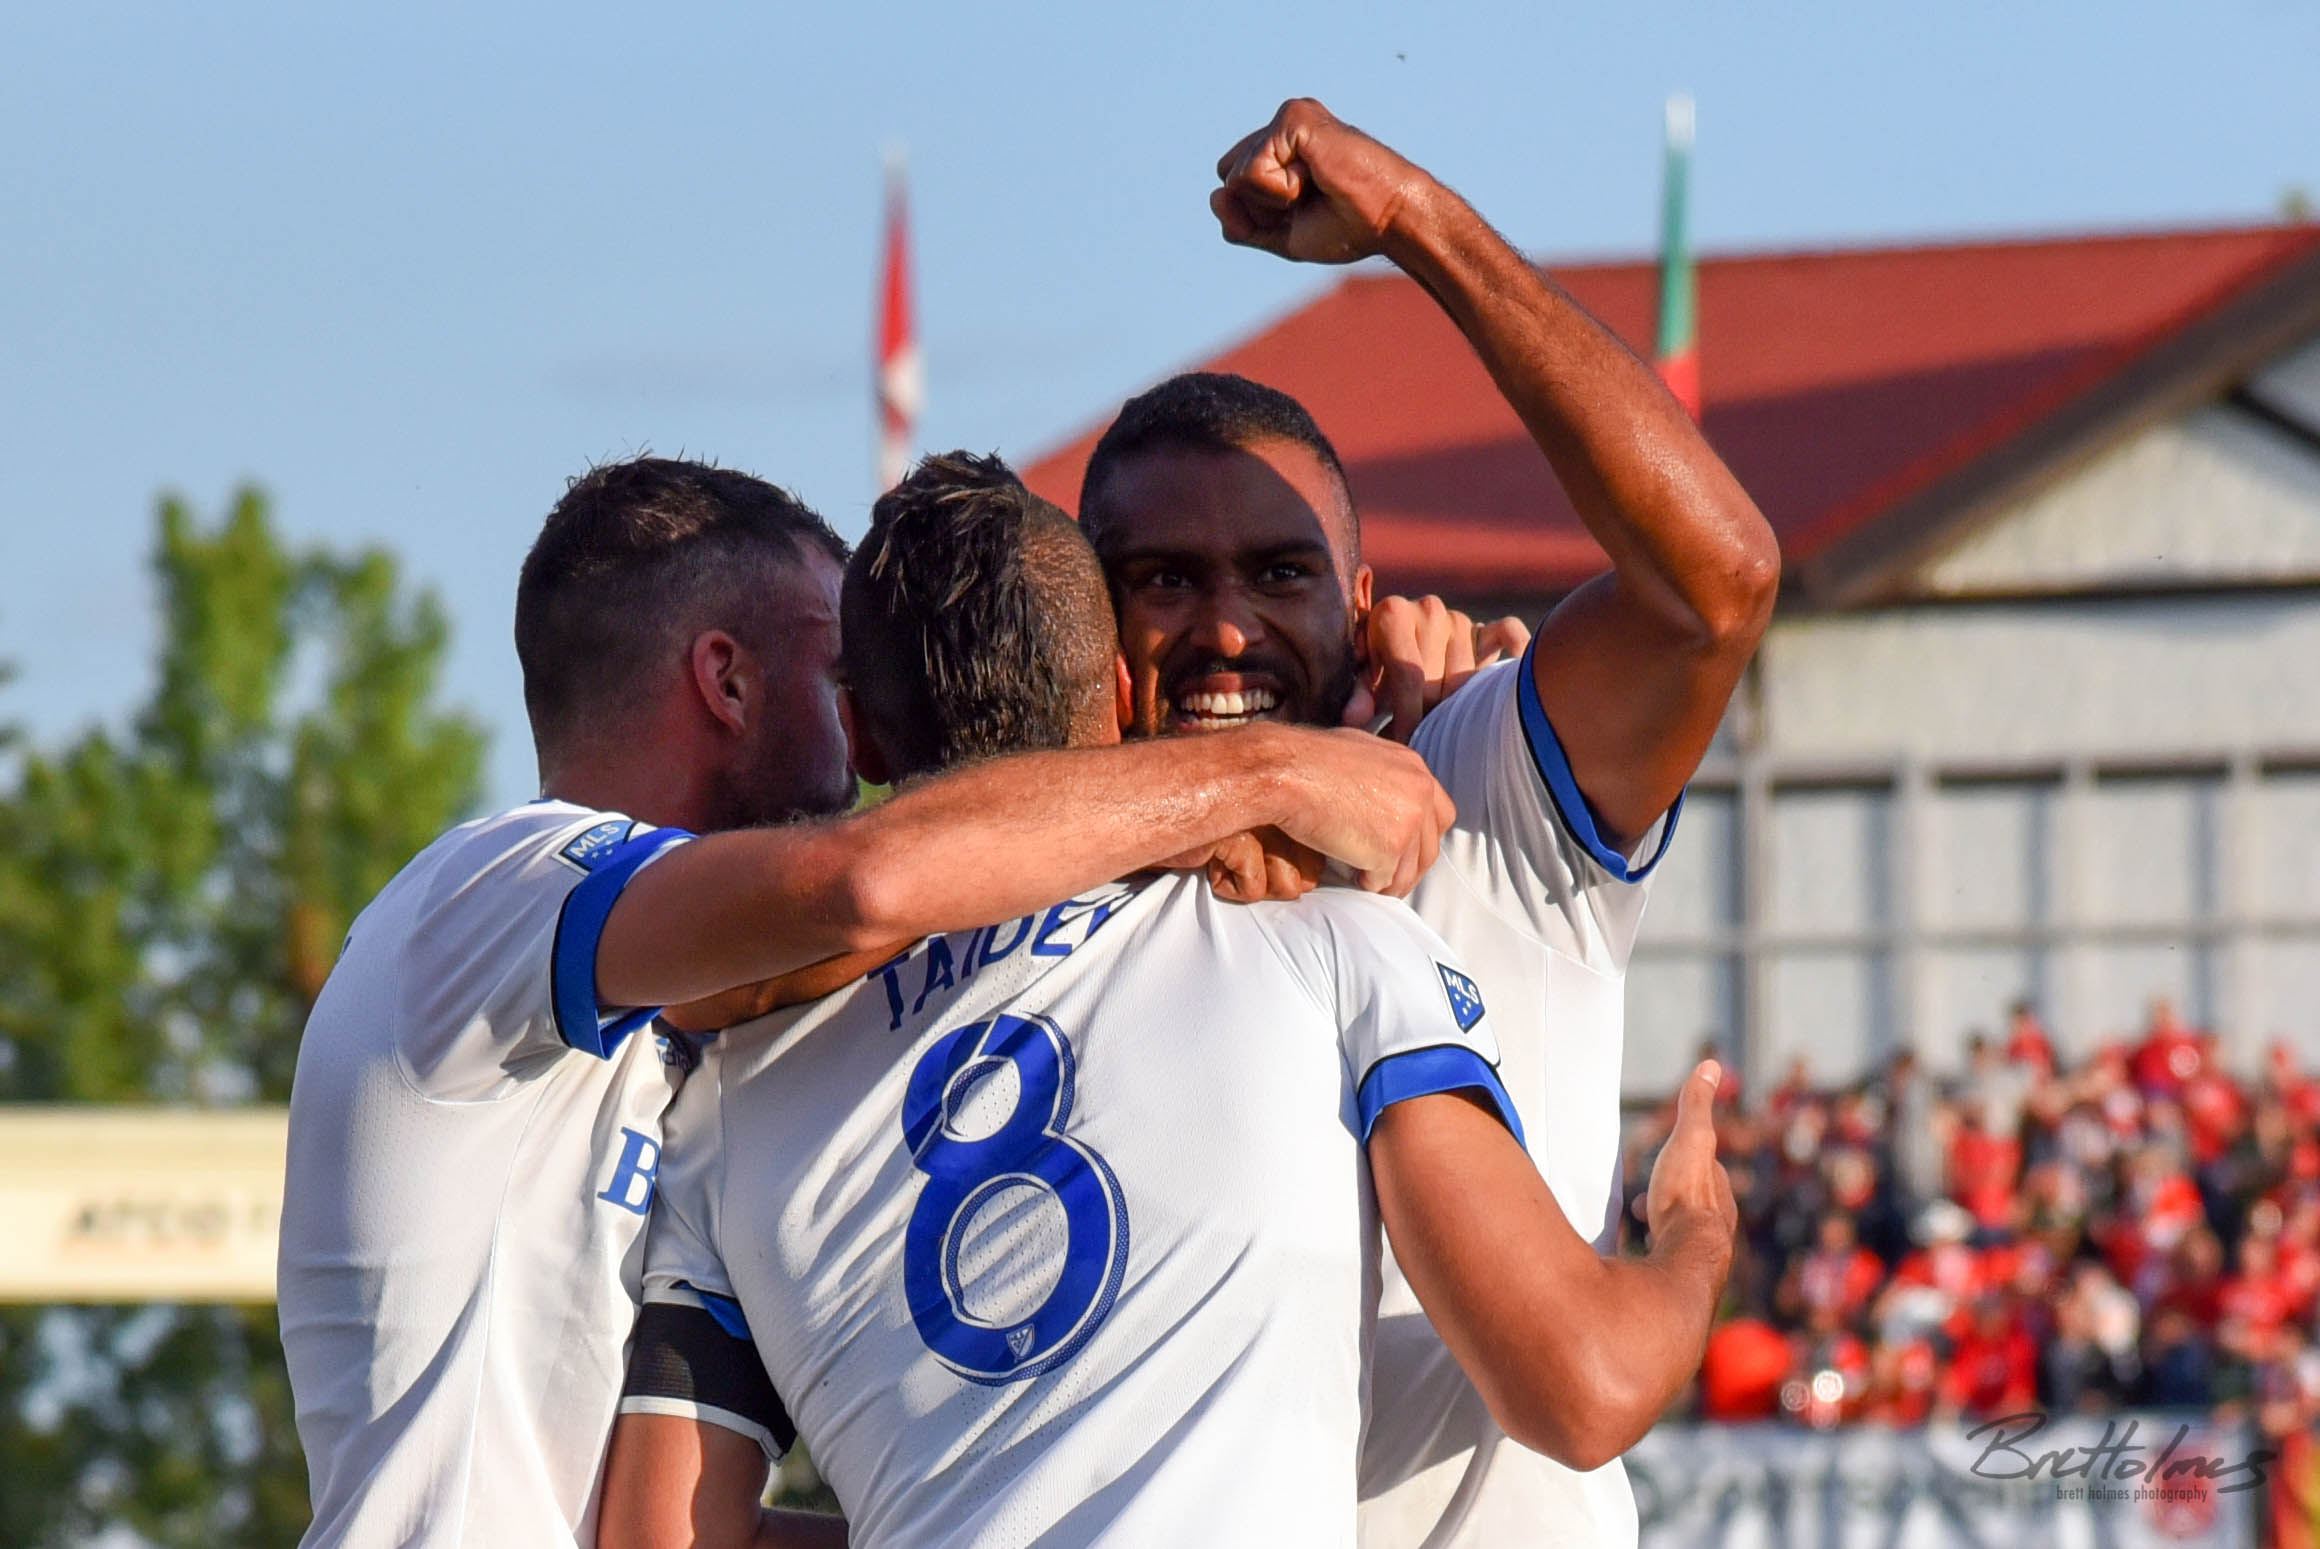 CALGARY, AB - AUGUST 14: Montreal Impact forward Anthony Jackson-Hamel (11) celebrates a goal with Montreal Impact midfielder Saphir Taïder (8) and teammates during the first half of the second leg of a Canadian Championship semifinal match between the Montreal Impact and Cavalry FC on August 14, 2019, at ATCO Field at Spruce Meadows in Calgary, AB. (Photo by Brett Holmes/Icon Sportswire)